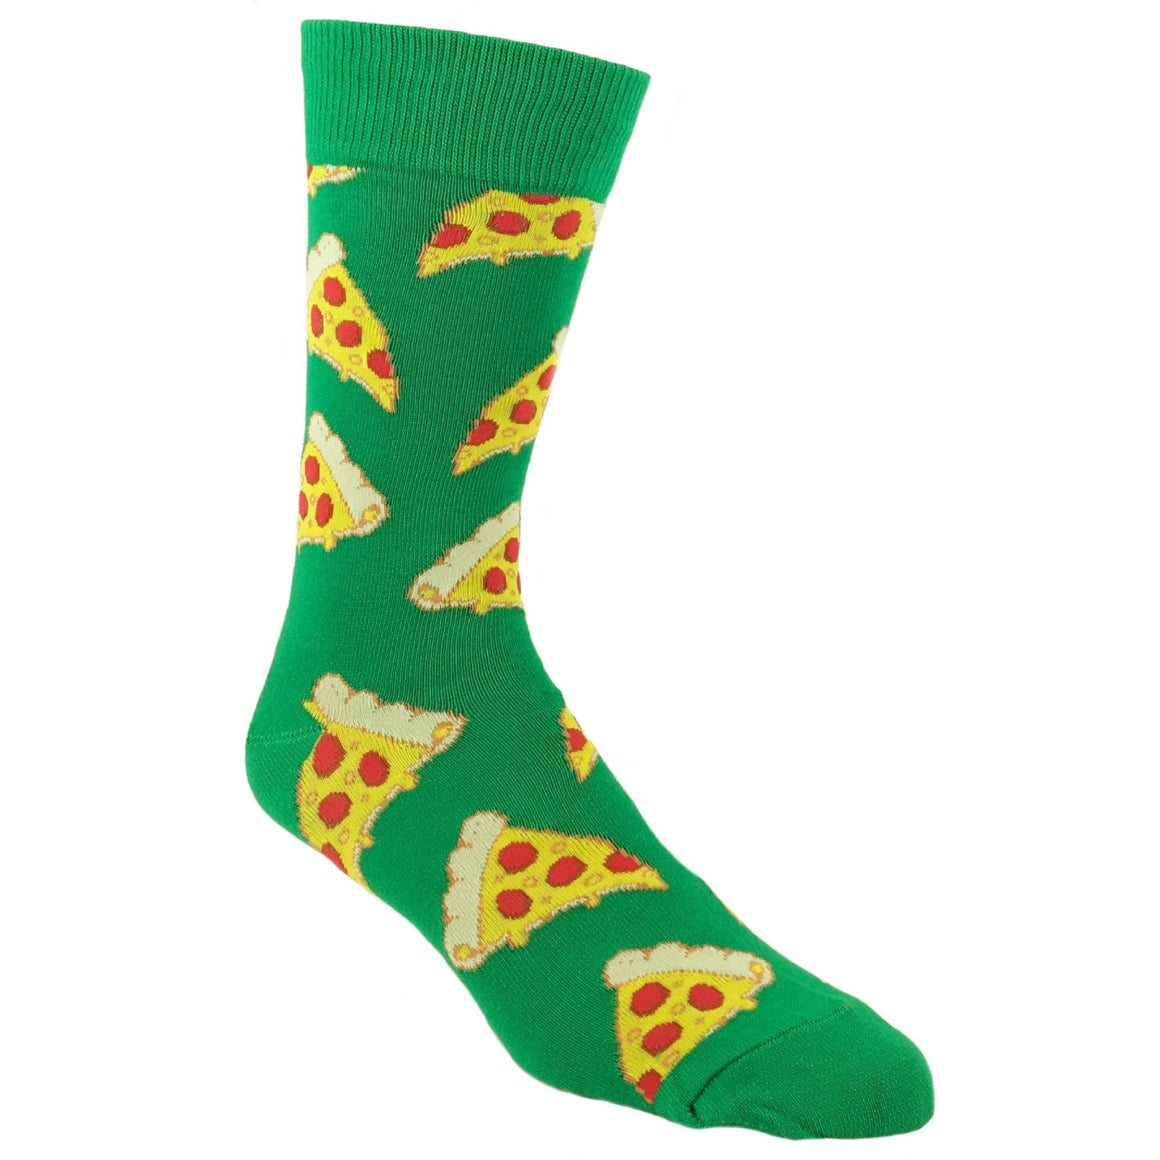 Pizza Slice Socks in Green by SockSmith - The Sock Spot